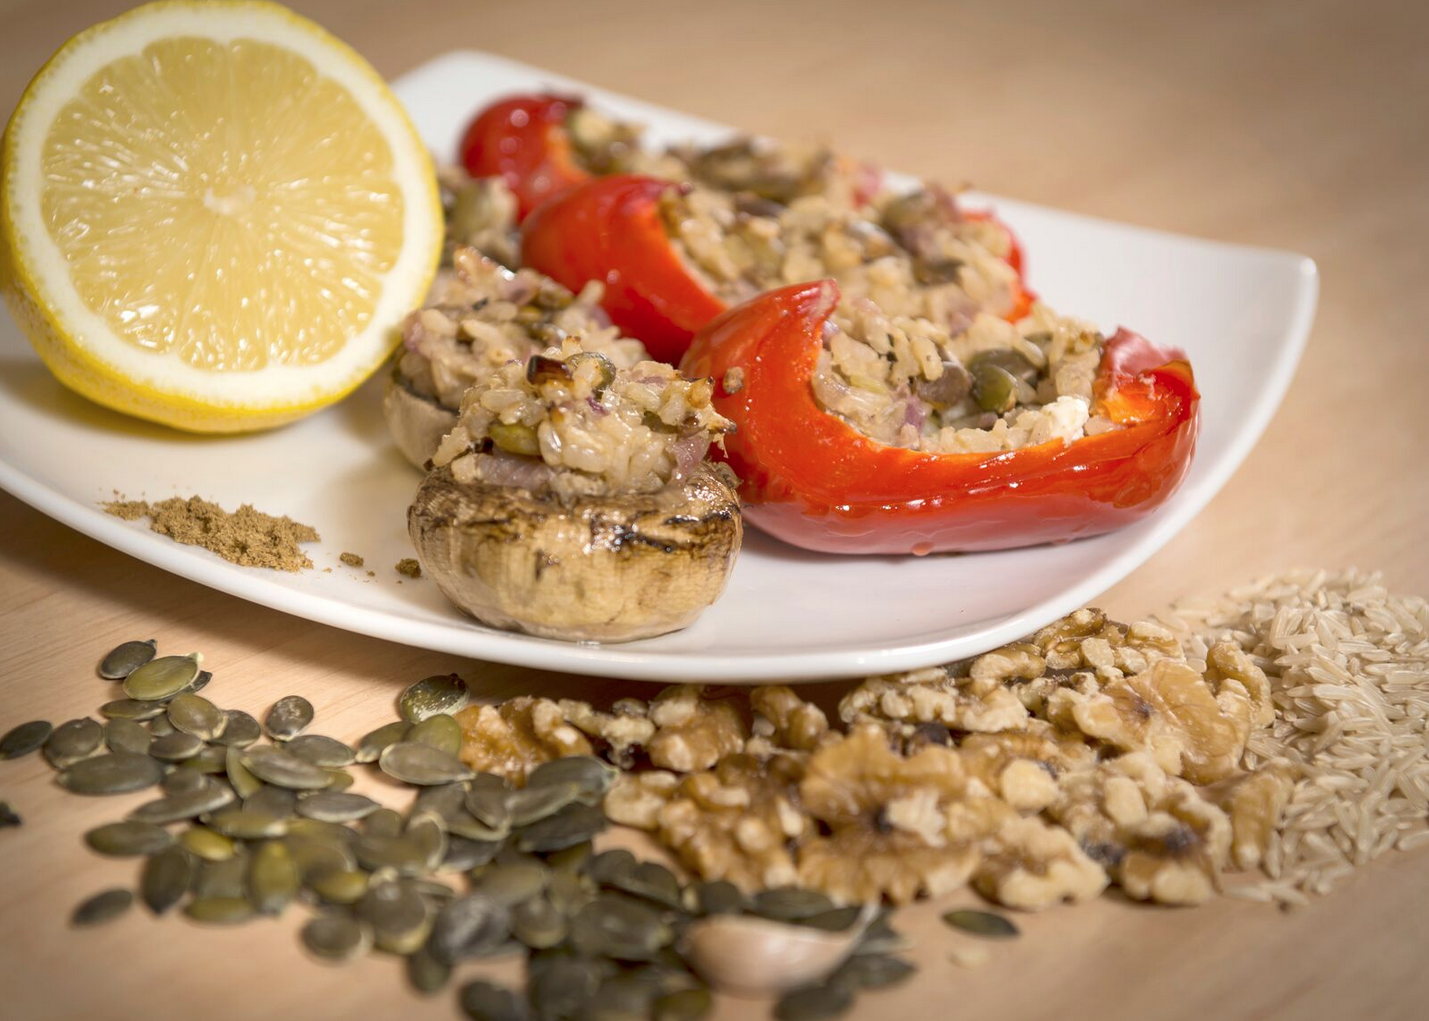 Recipe of the week: Stuffed Capsicums